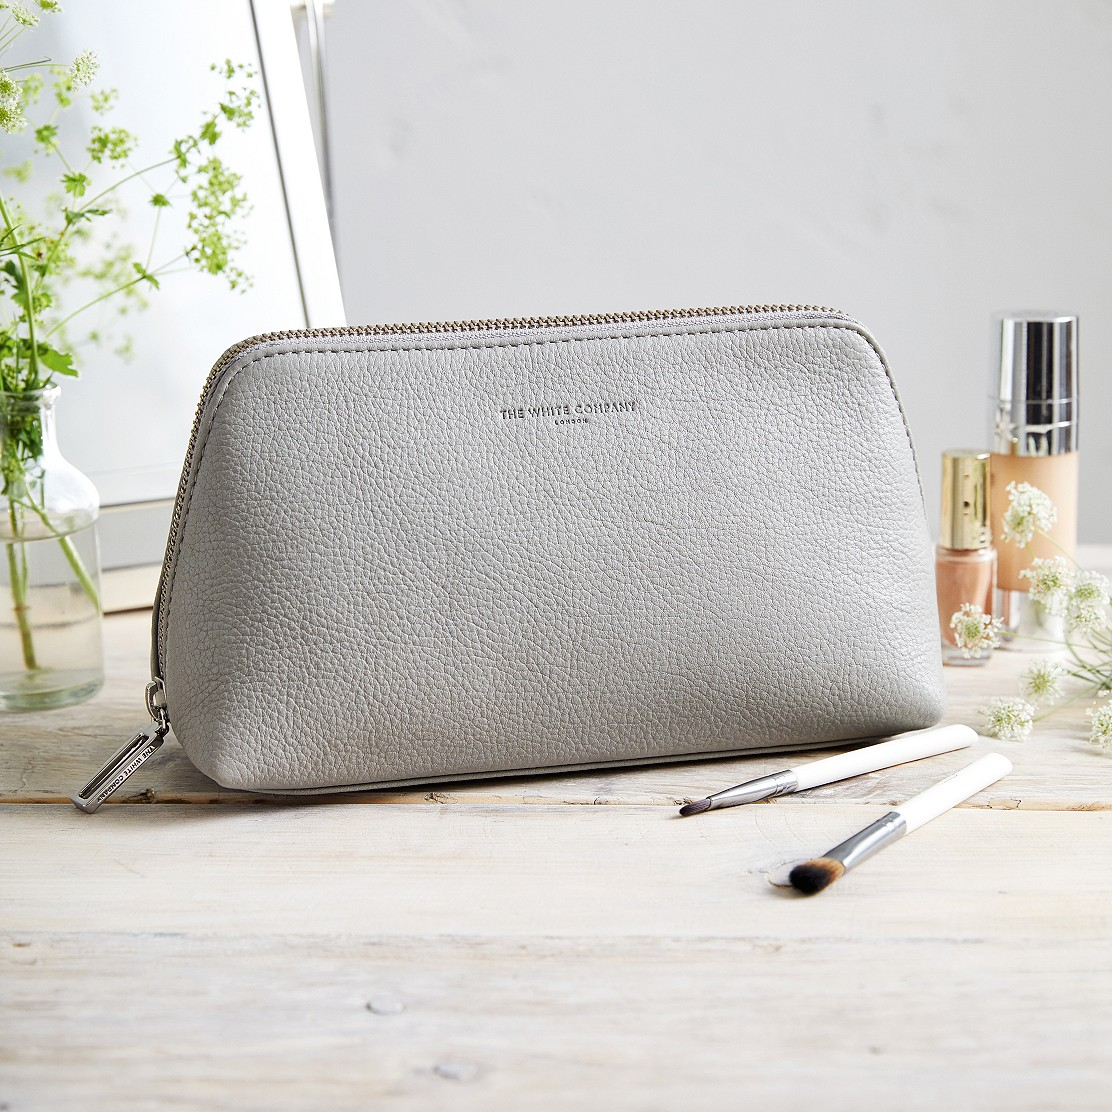 Pebblegrain Leather Make Up Bag Wash